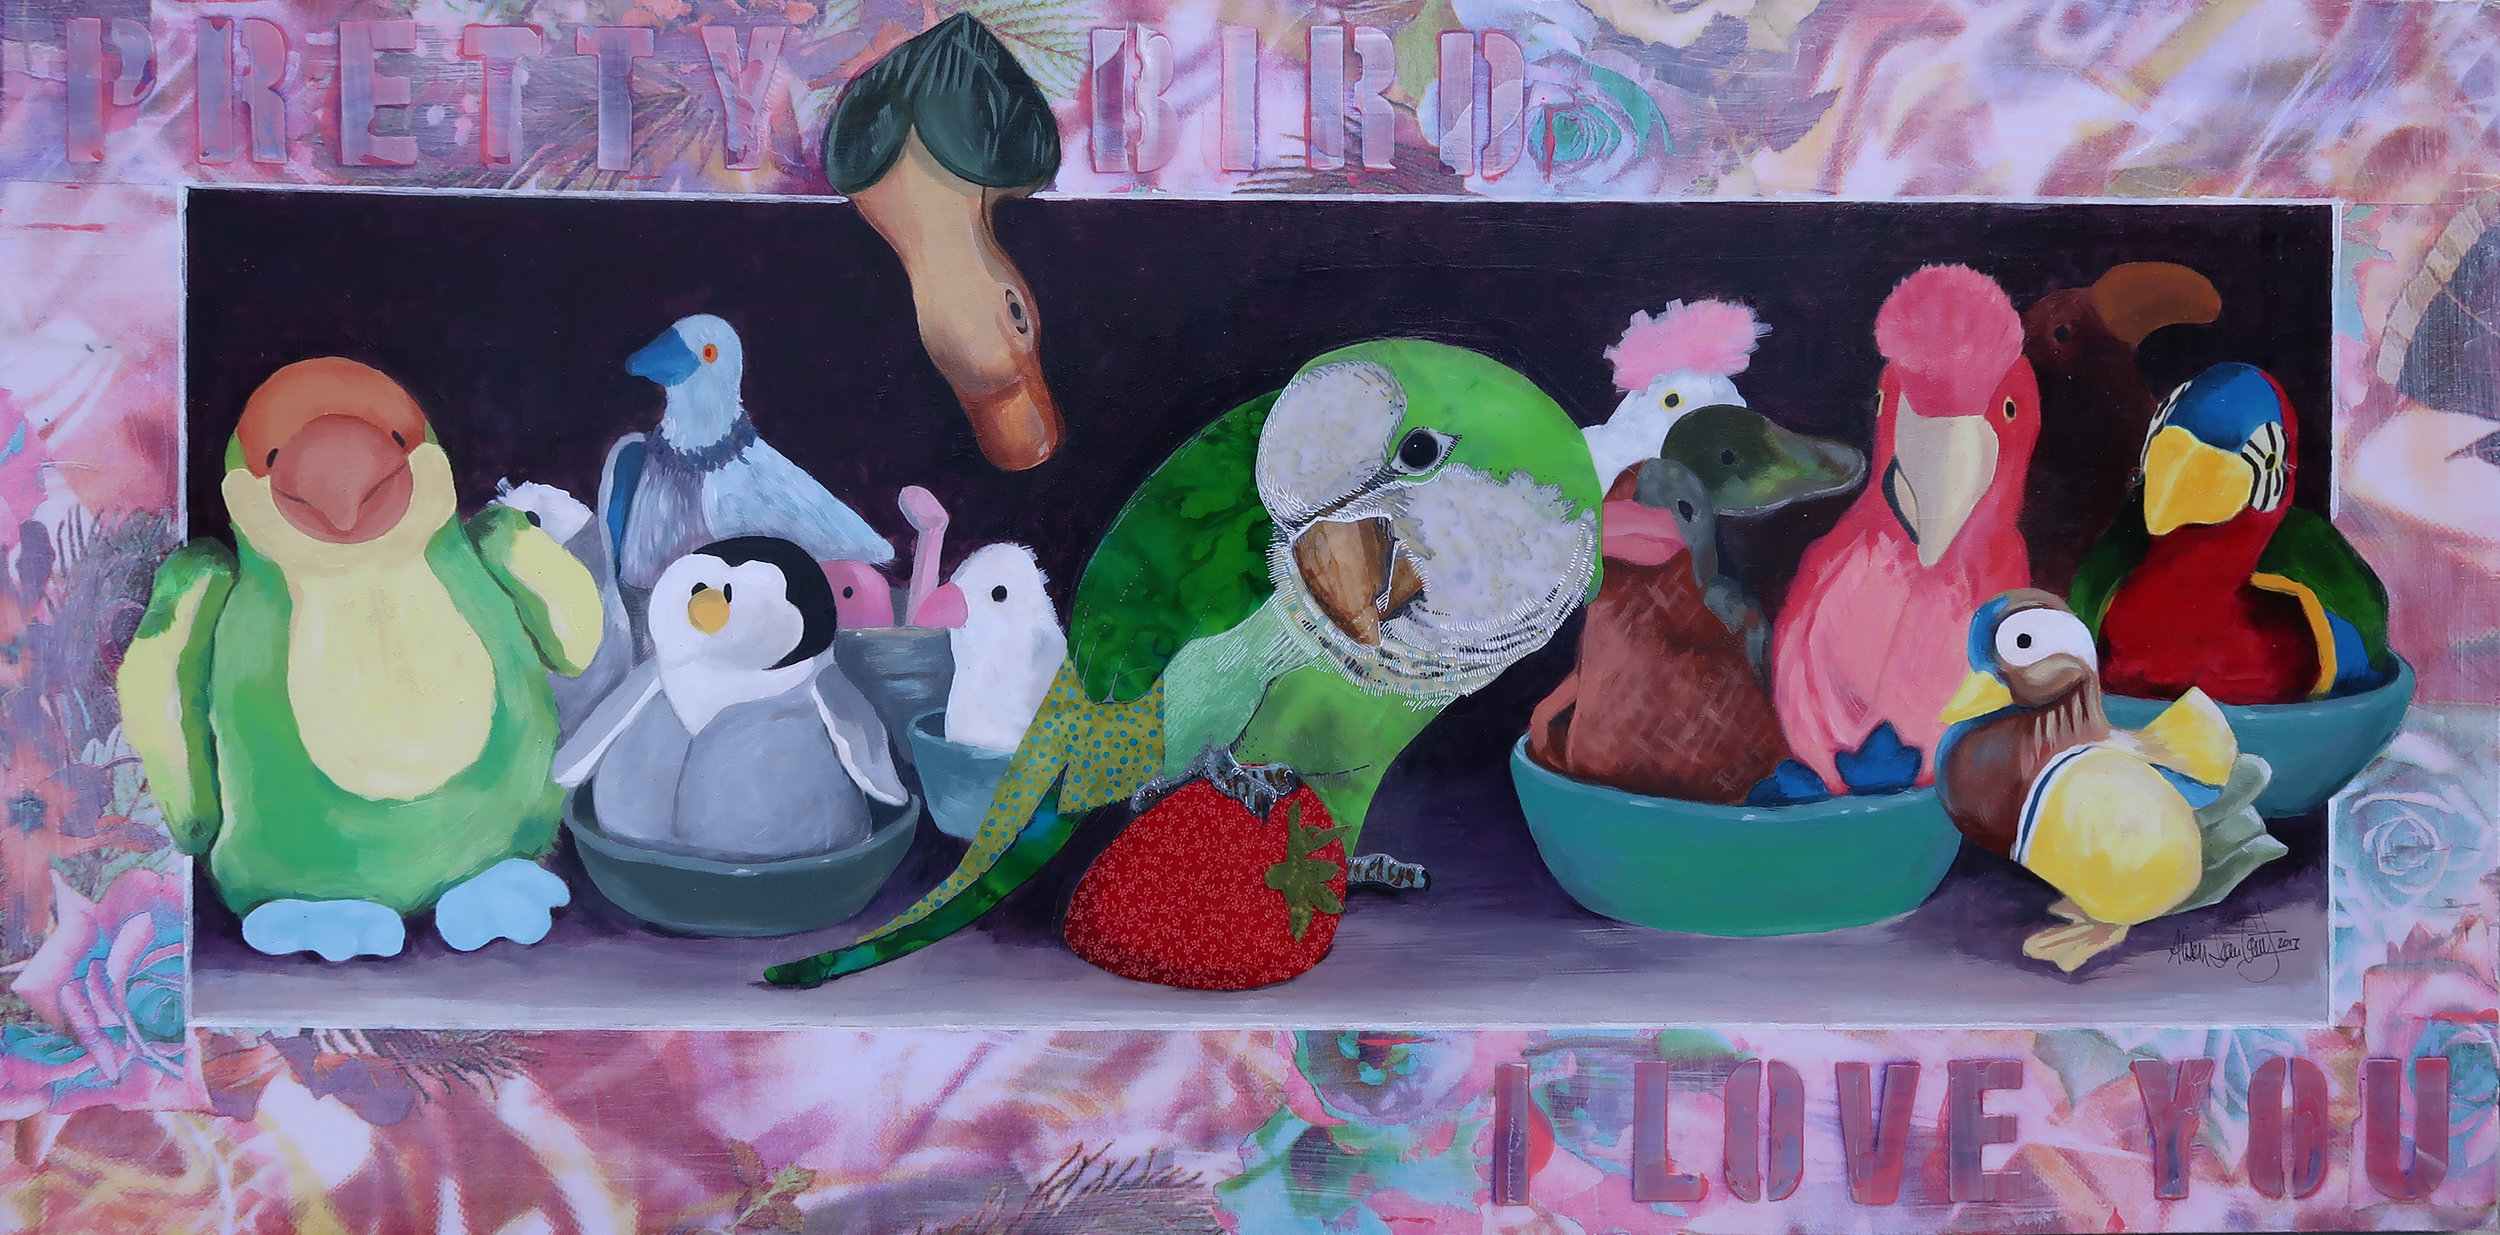 """Pretty Bird I love You - 24"""" x 12"""" - 2017Private Collection - Duncan, BCI was commissioned to make a piece for a graduation gift. The client wanted a compilation of all the daughter's bird friends, which included all her beanie baby stuffed animals from when she was growing up plus her real bird, Chico. It was too complicated to make as a complete fabric piece, so I used a combination of acrylic paint and fabric. Chico and the border are made from fabric. I added the words that he said, """"Pretty bird"""